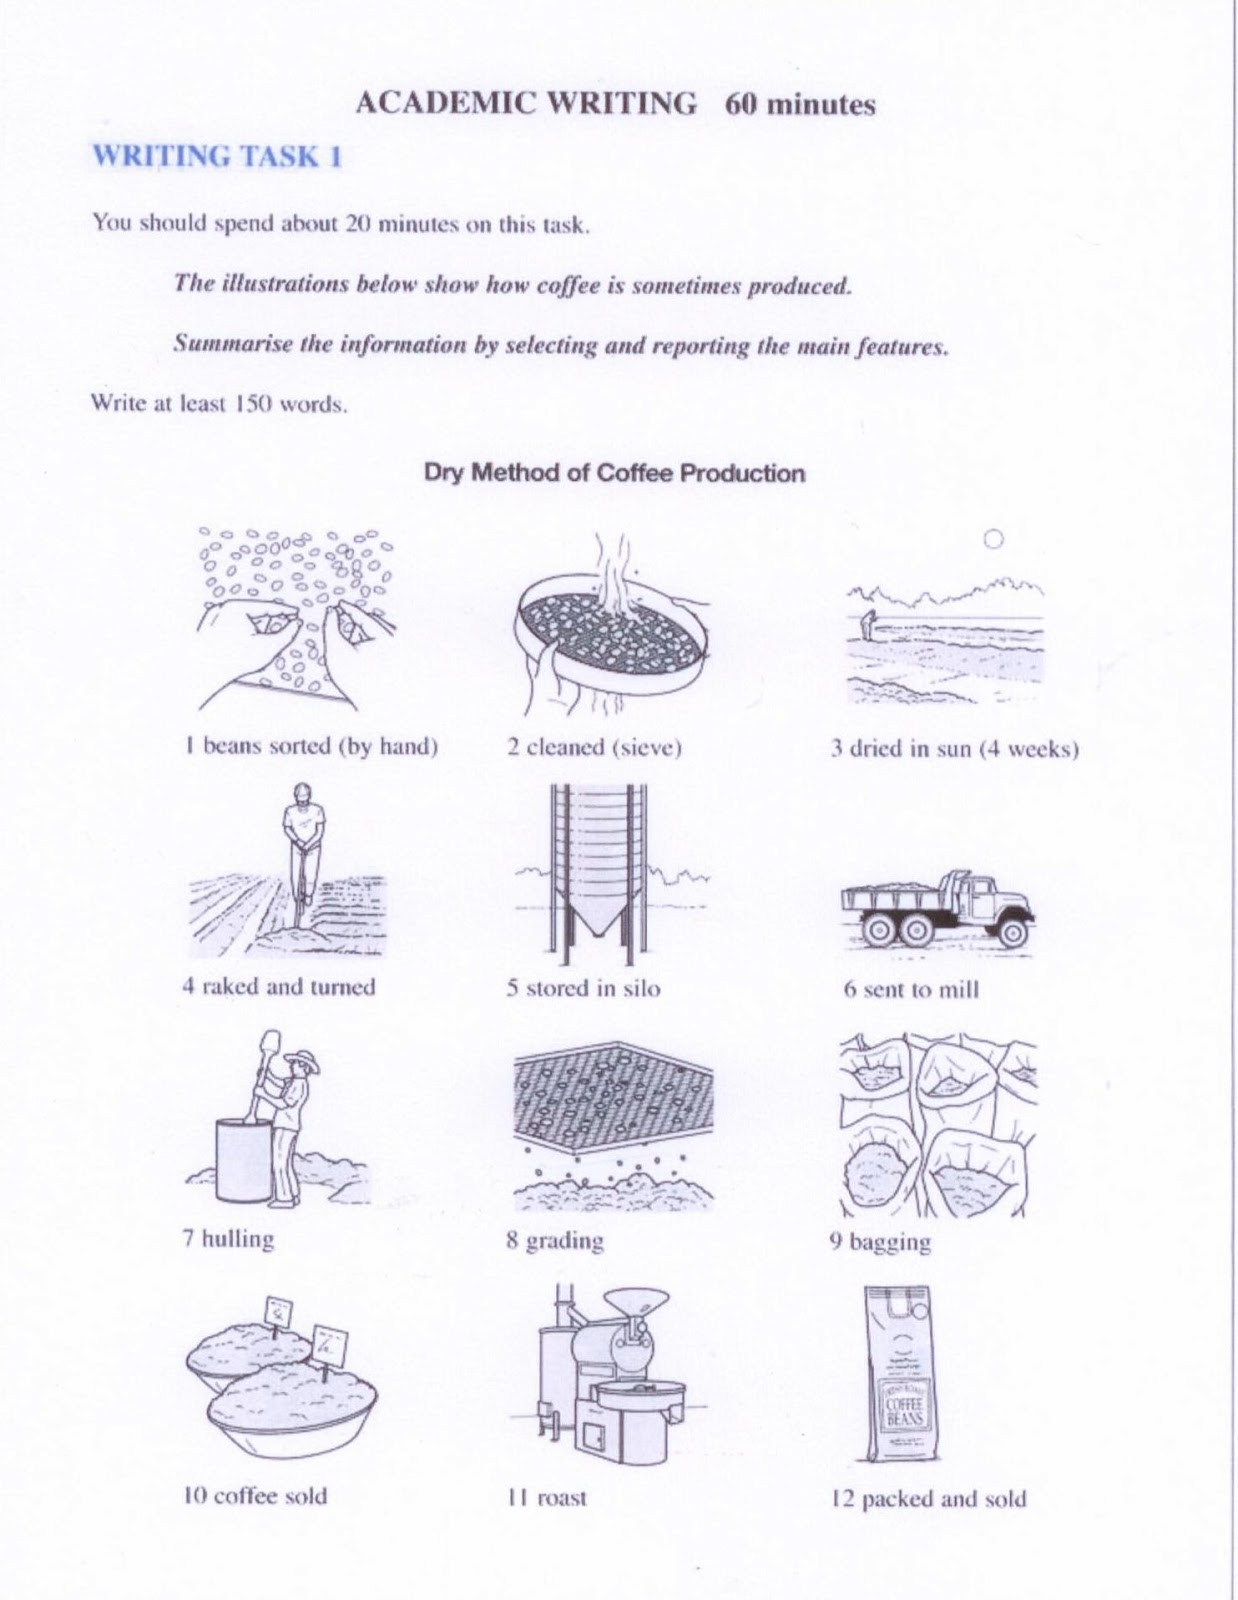 Express teach learn english online academic writing model the diagram provided shows a method of producing coffee from the initial stages of hand sorting through to the final stages of packaging and sales ccuart Image collections